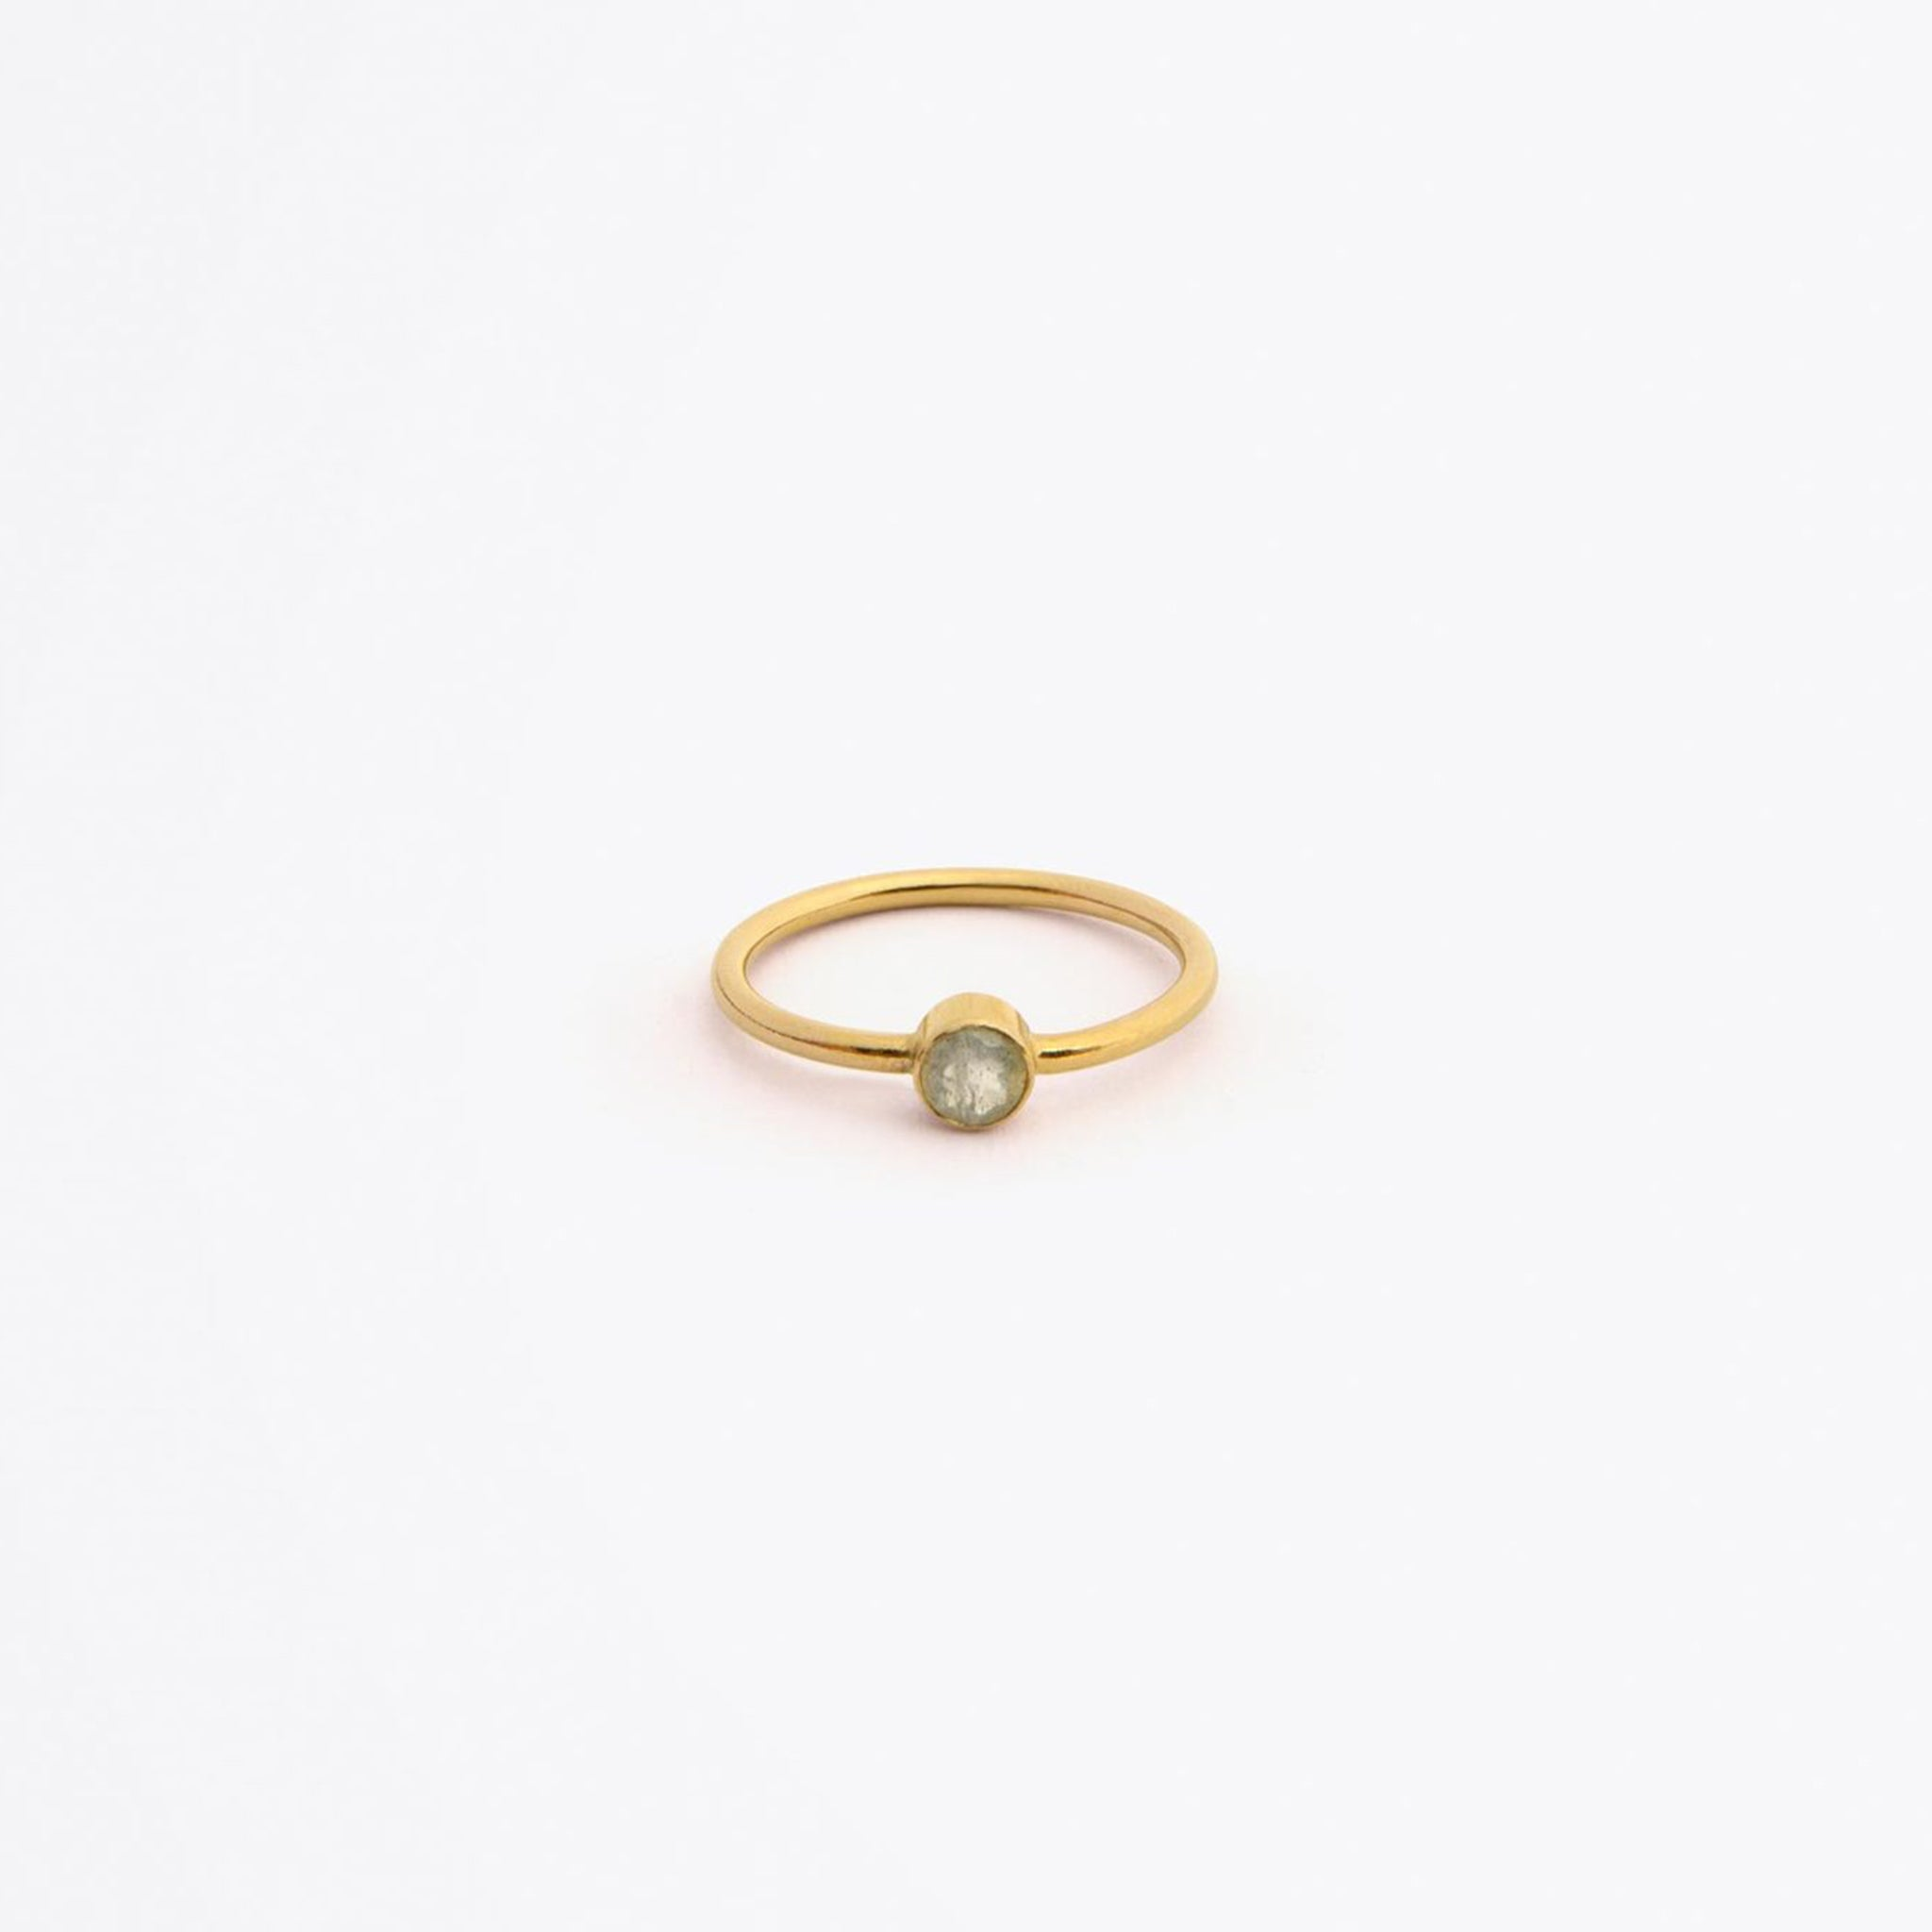 Wanderlust Life Ethically Handmade jewellery made in the UK. Minimalist gold and fine cord jewellery. nova ring, iridescent labradorite